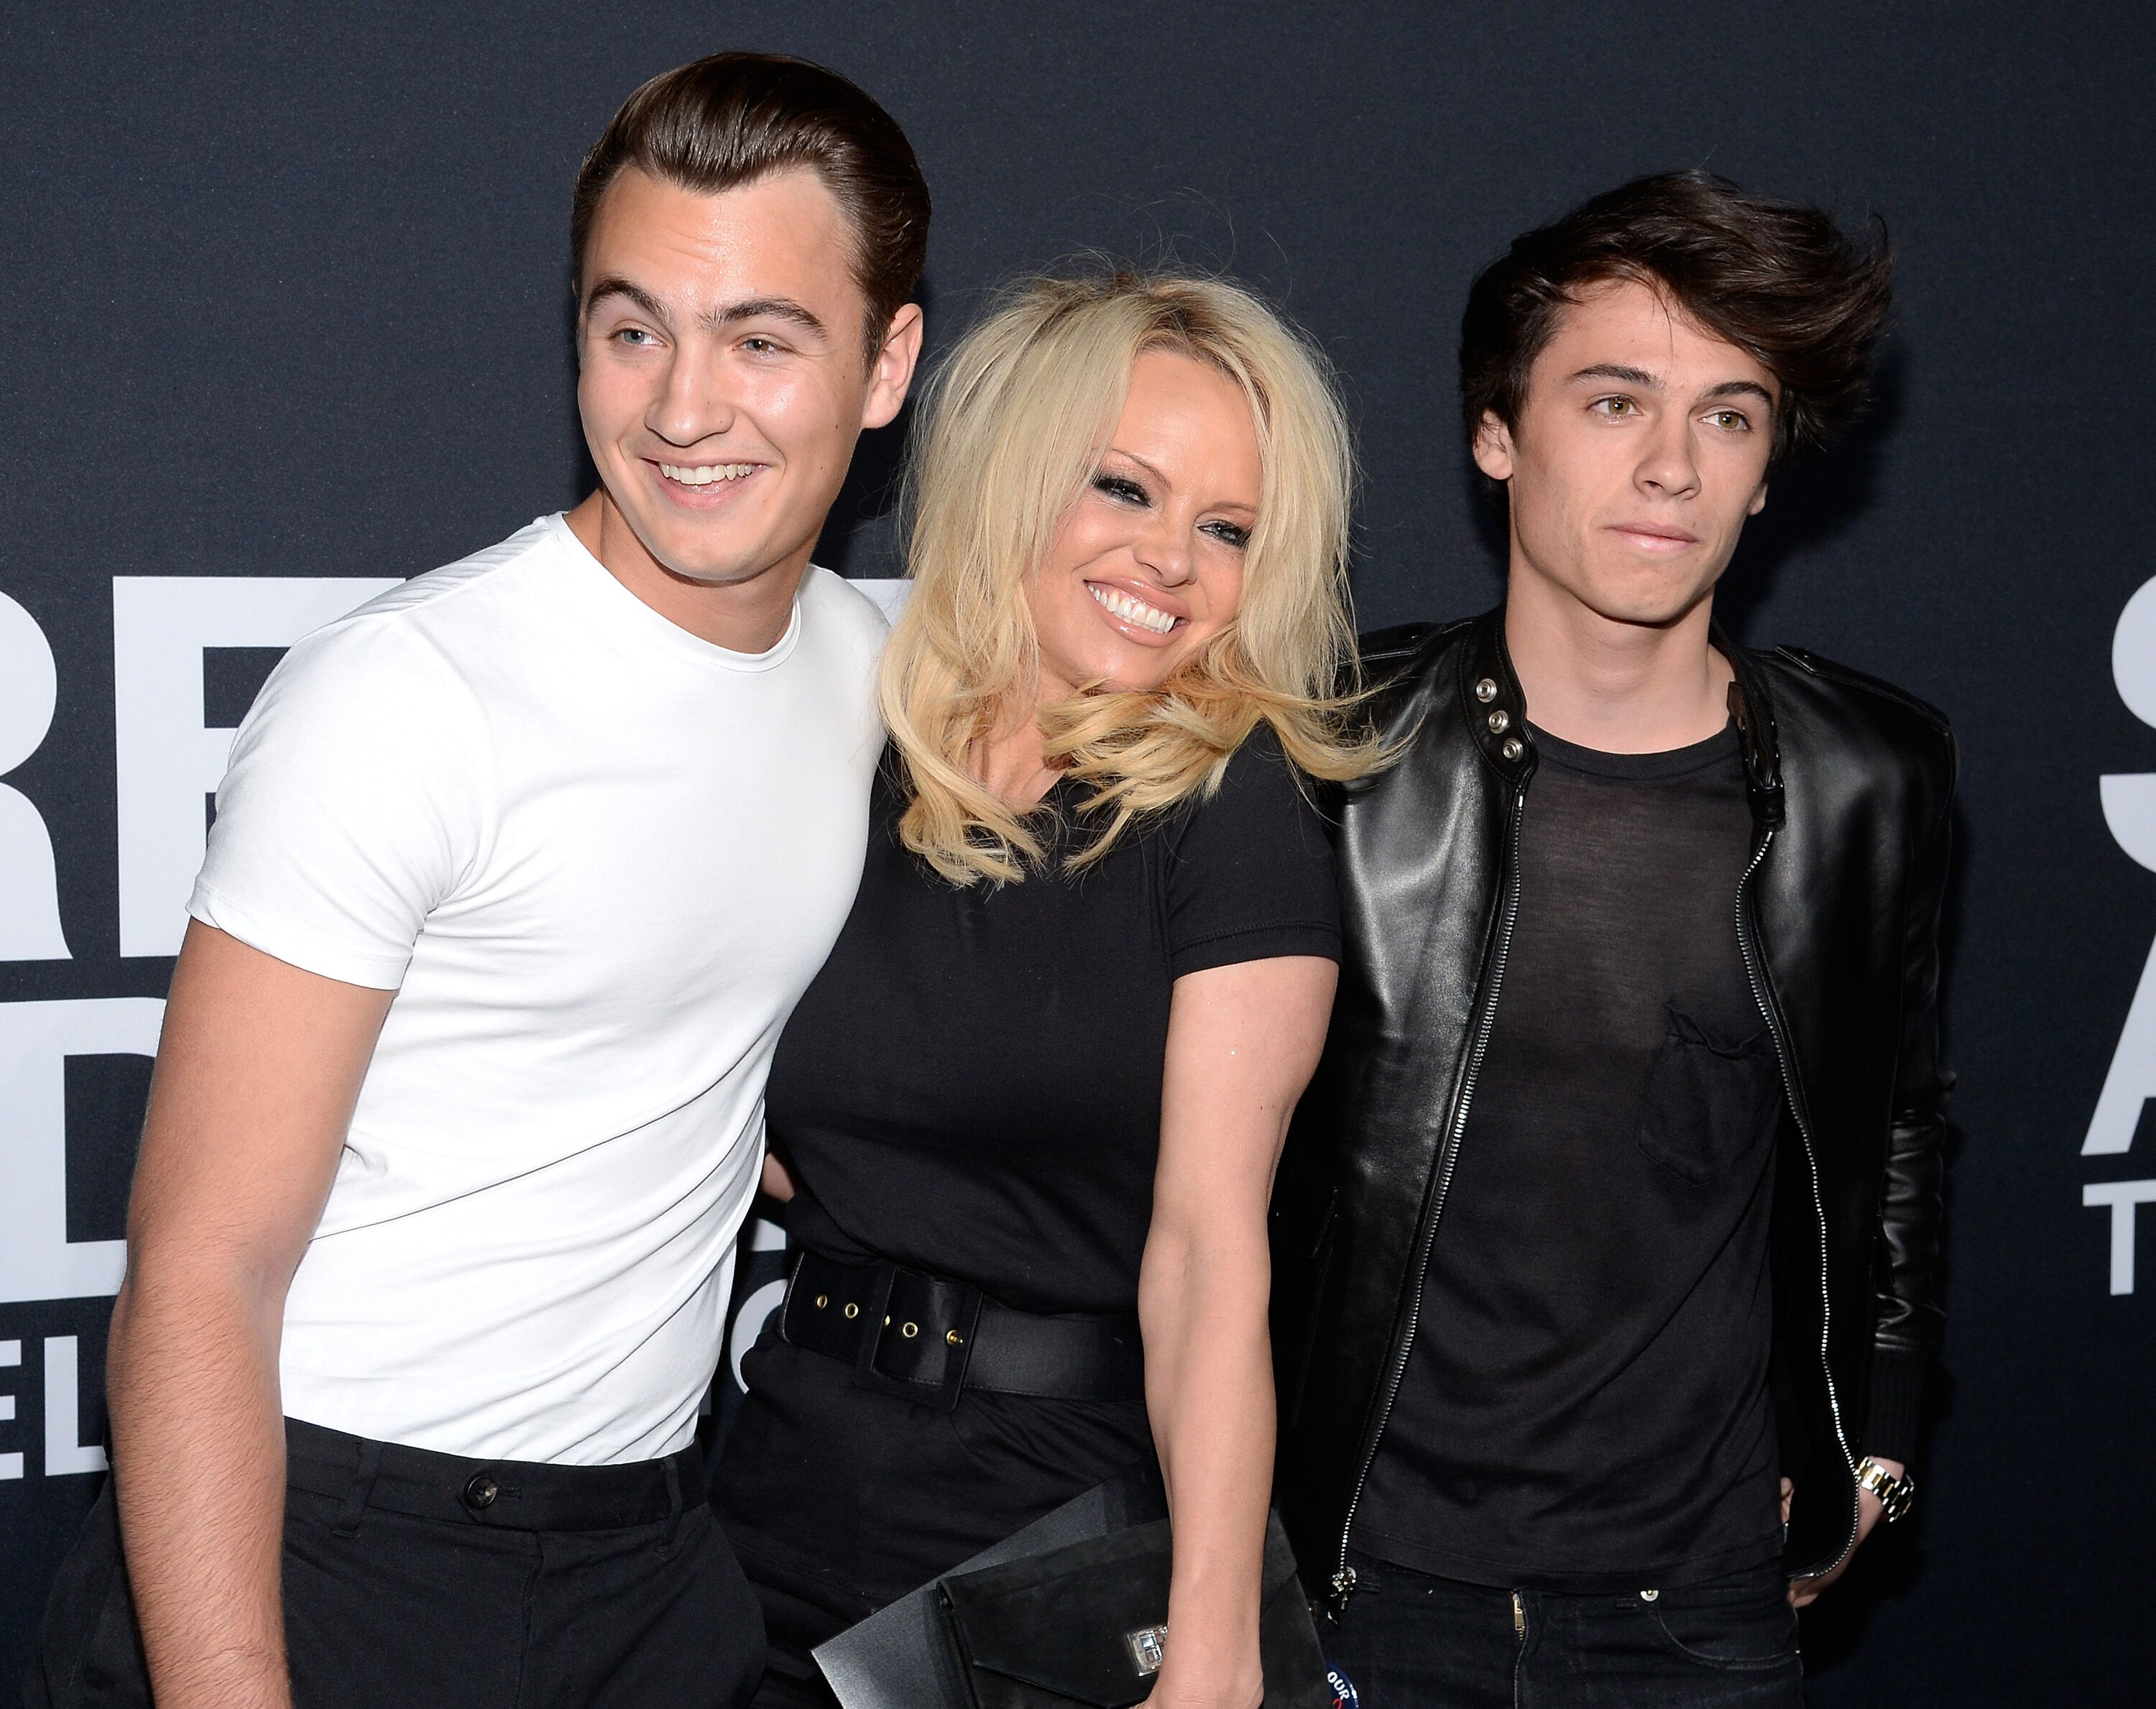 Pamela Anderson and her sons Brandon and Dylan Lee at the Saint Laurent show in Hollywood in 2016 | Source: Getty Images